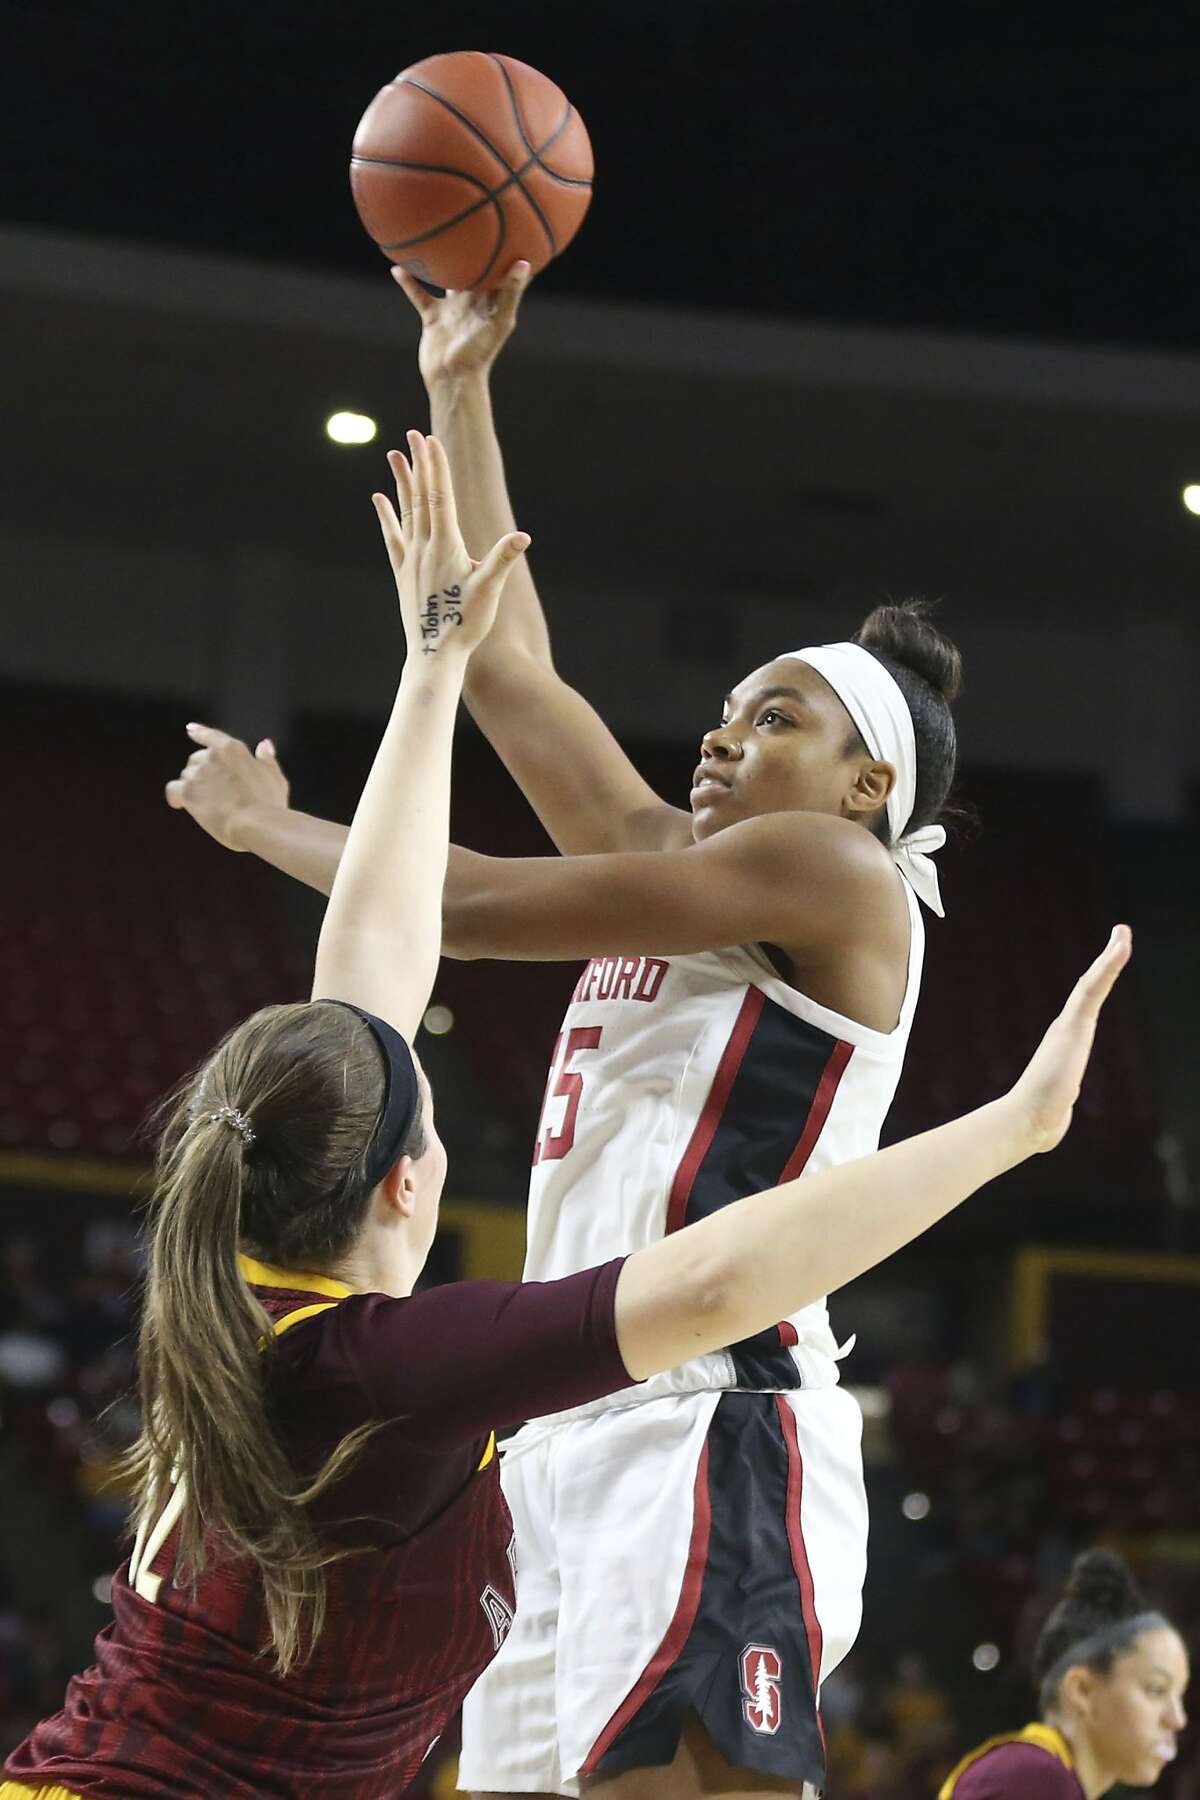 Stanford's Maya Dodson shoots over an ASU player in the first half.